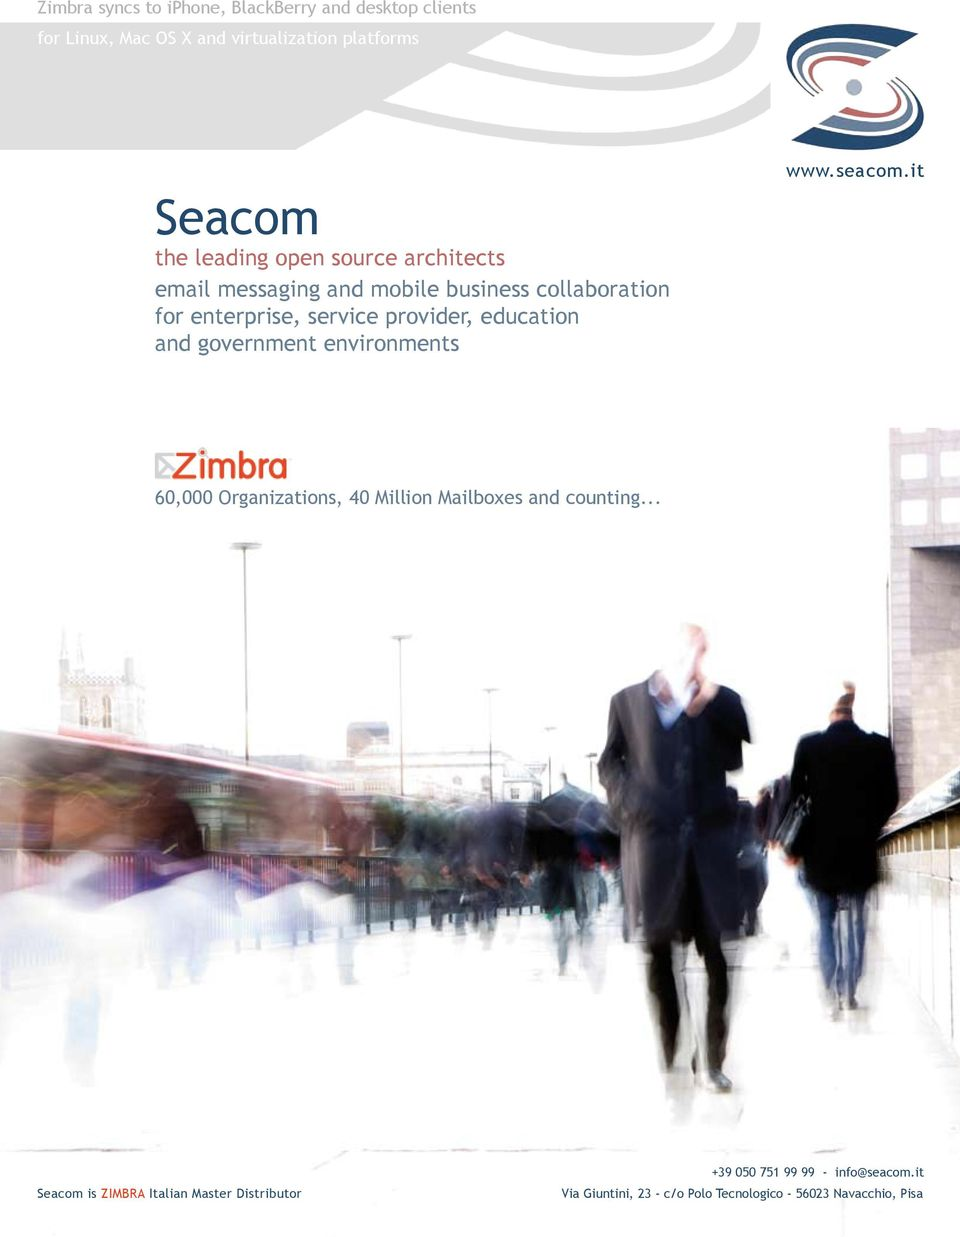 education and government environments www.seacom.it 60,000 Organizations, 40 Million Mailboxes and counting.